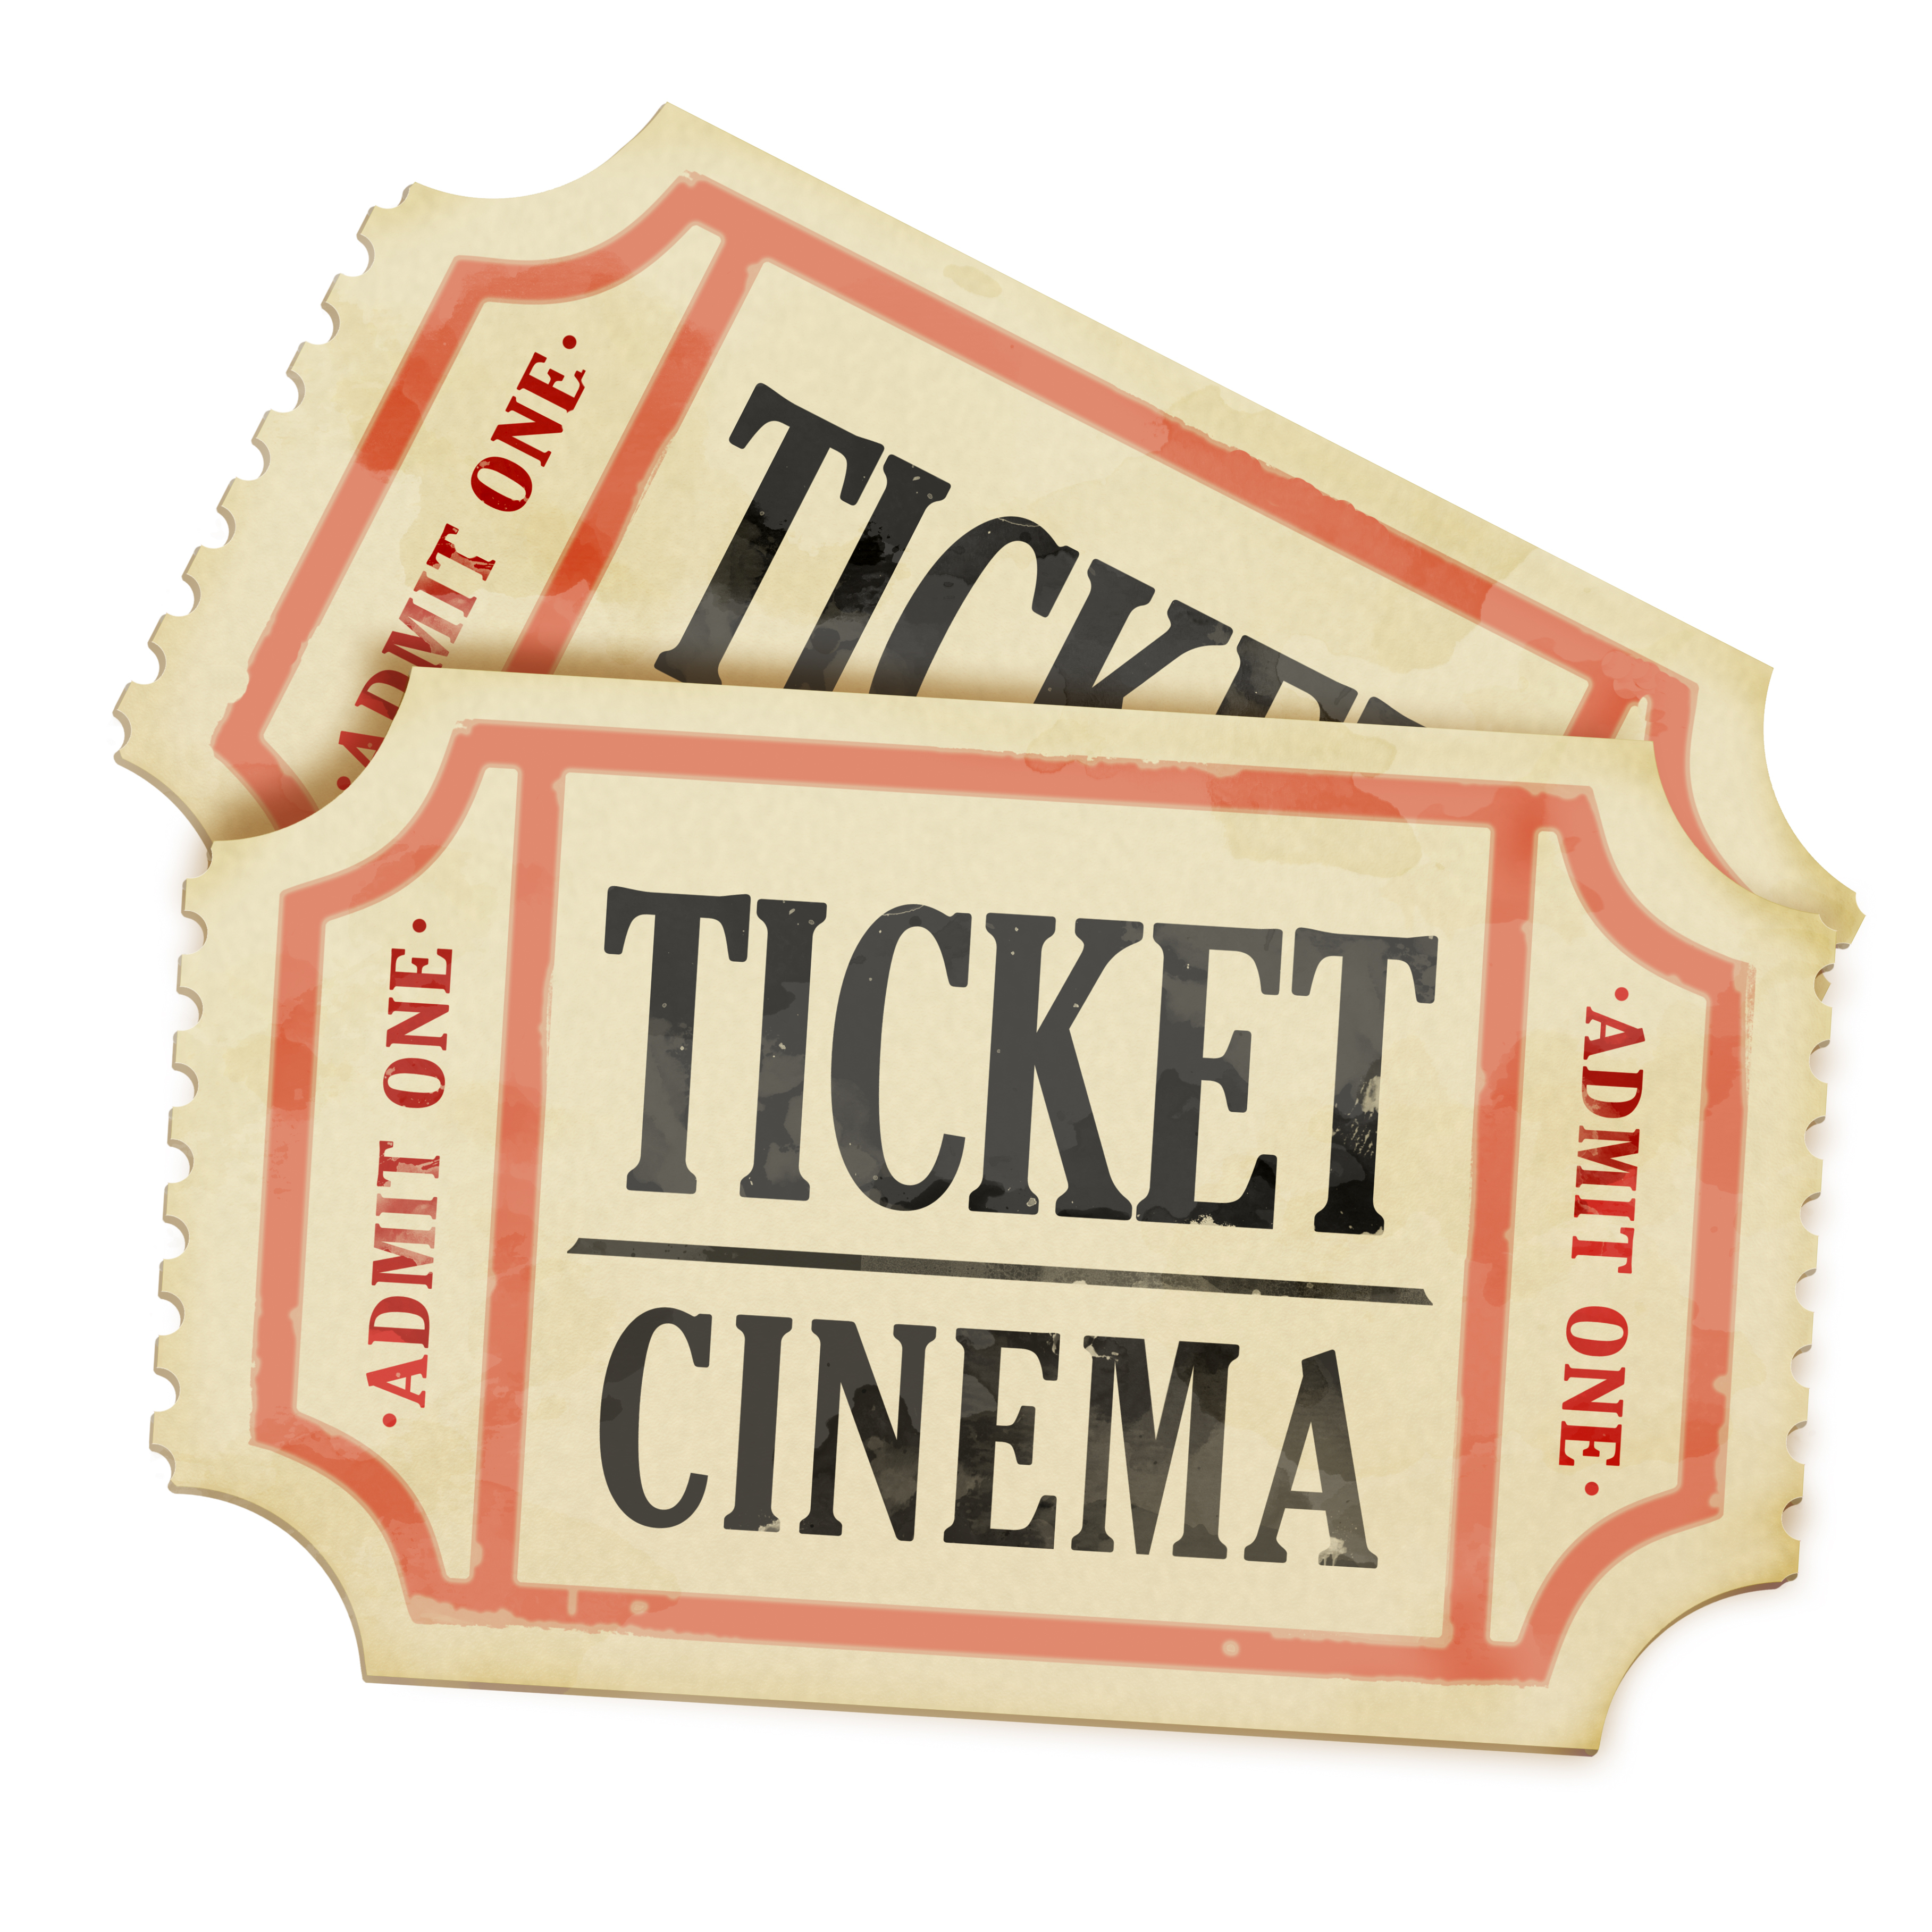 Learn about the newest movies and find theater showtimes near you. Watch movie trailers and buy tickets online. Check out showtimes for movies out now in theaters.